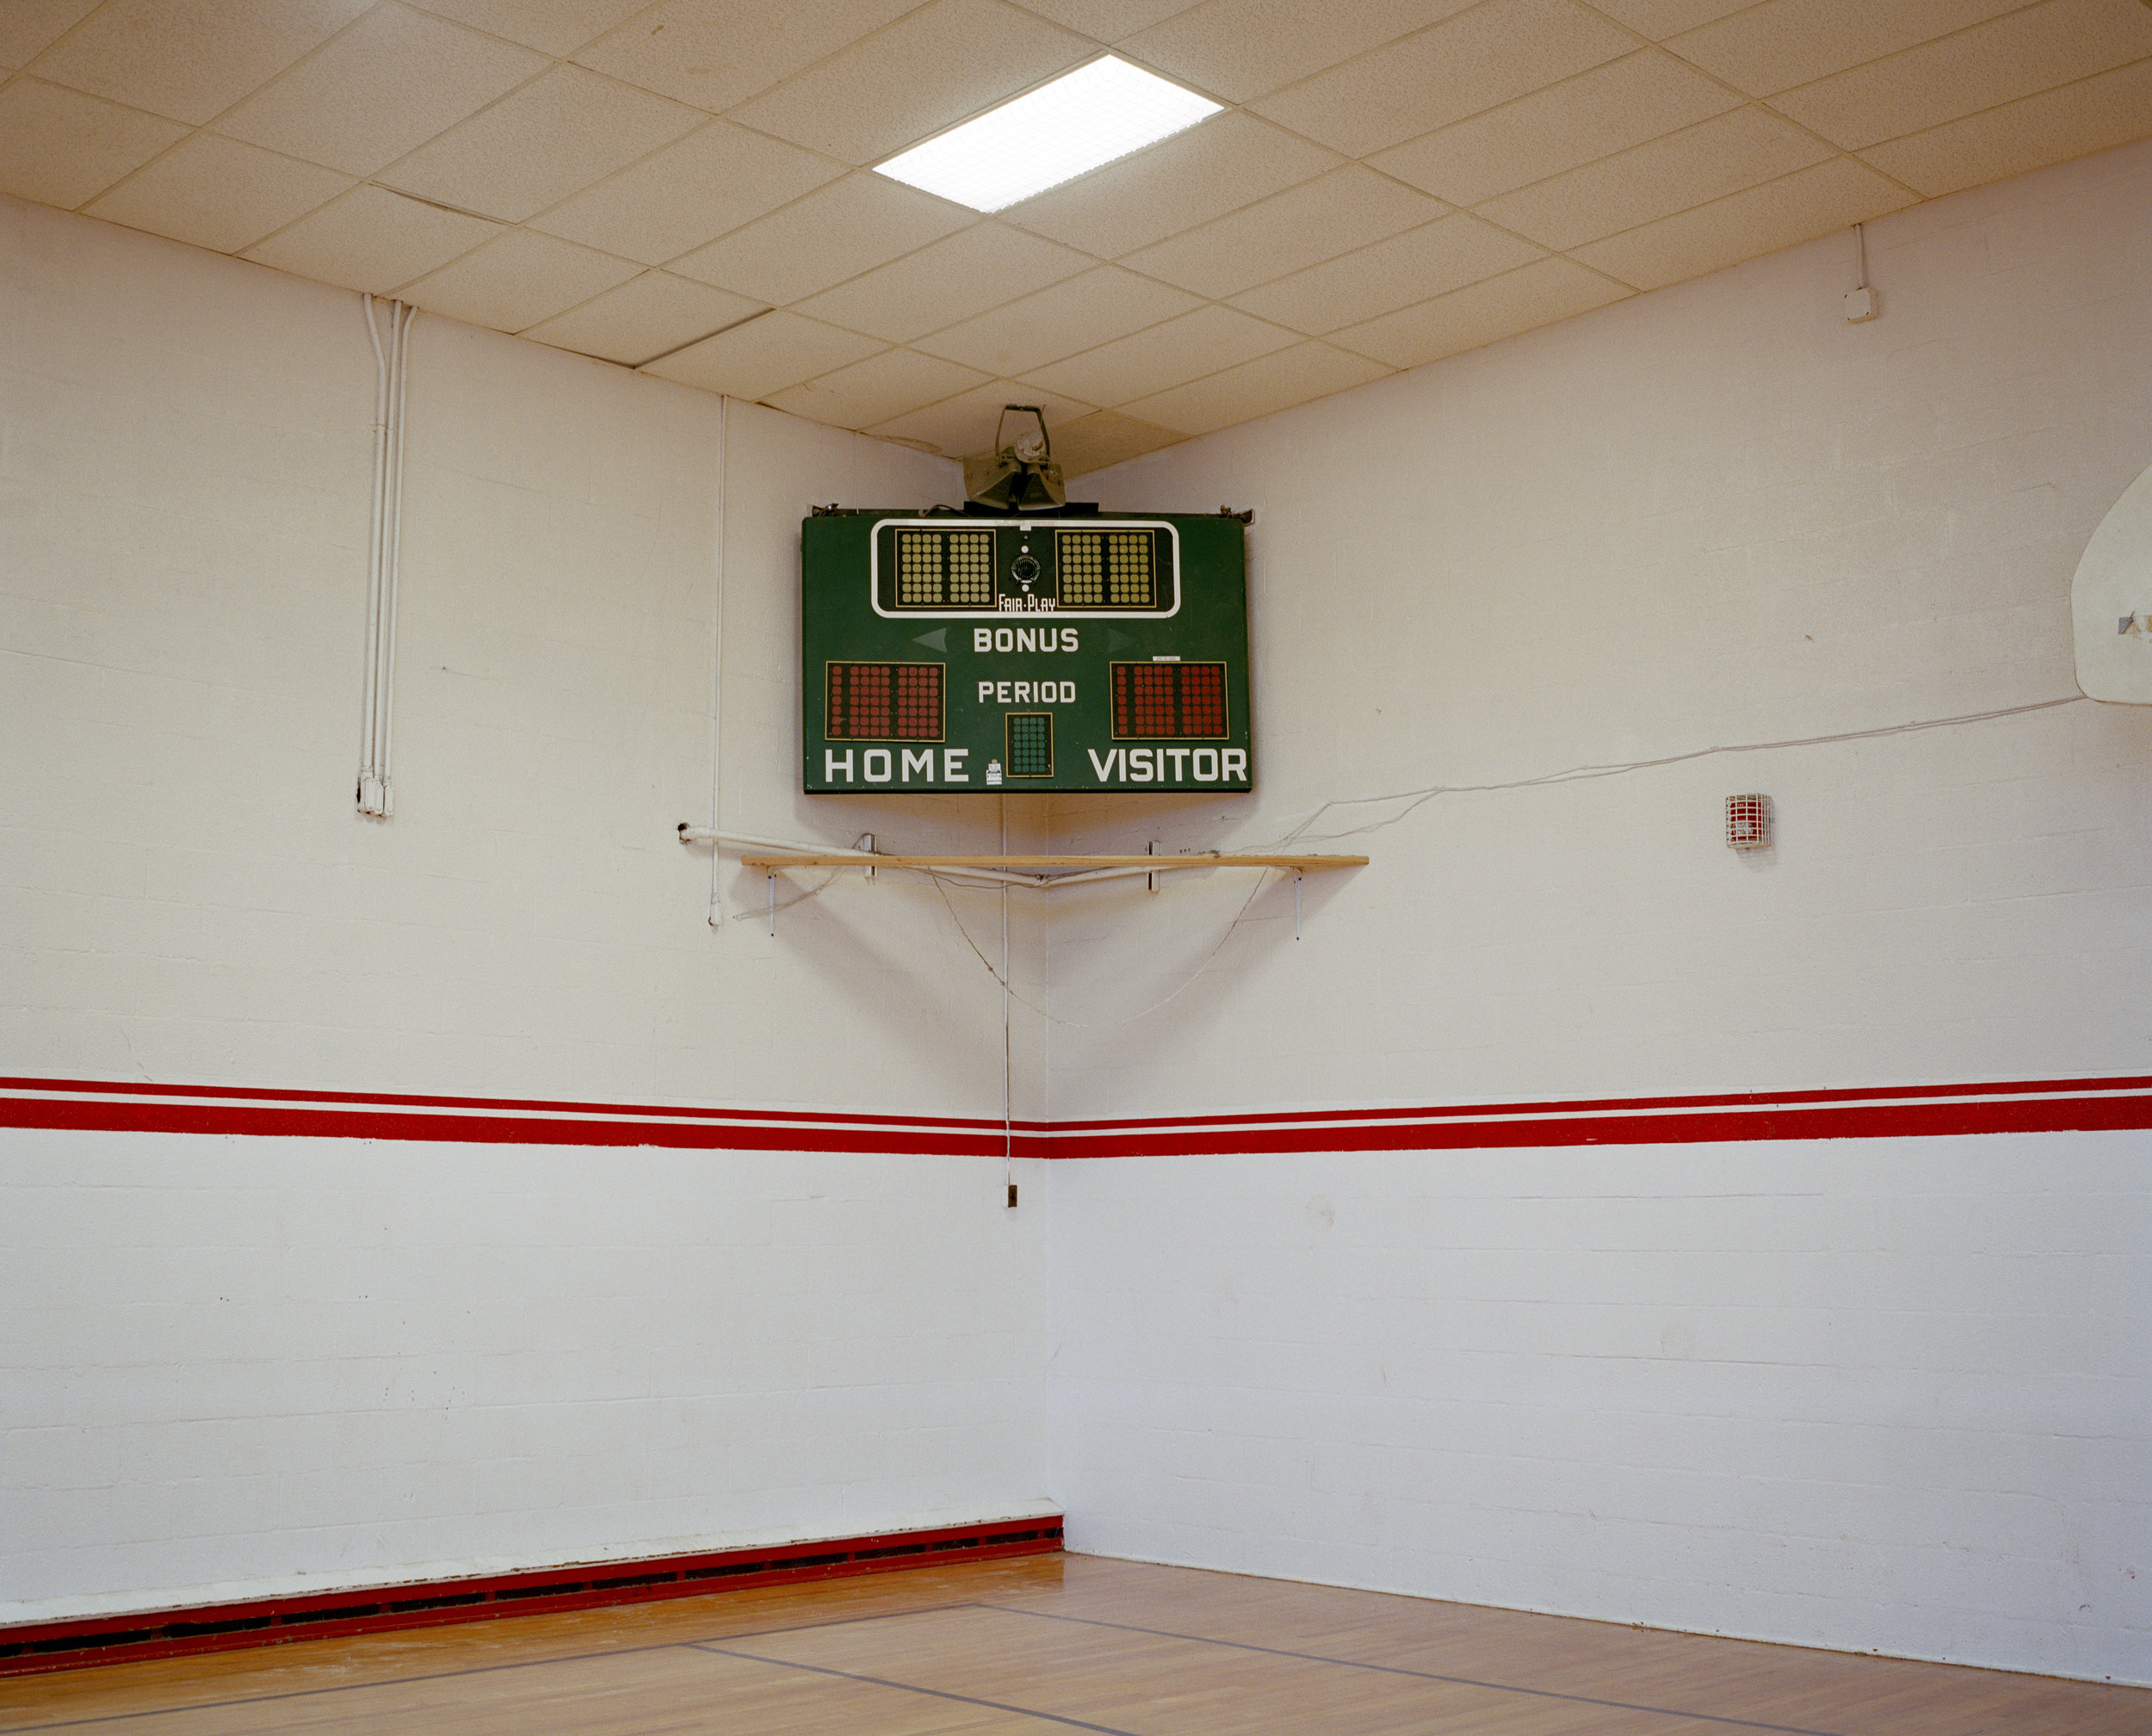 Jon_Ervin_Old North Gymnasium.jpg